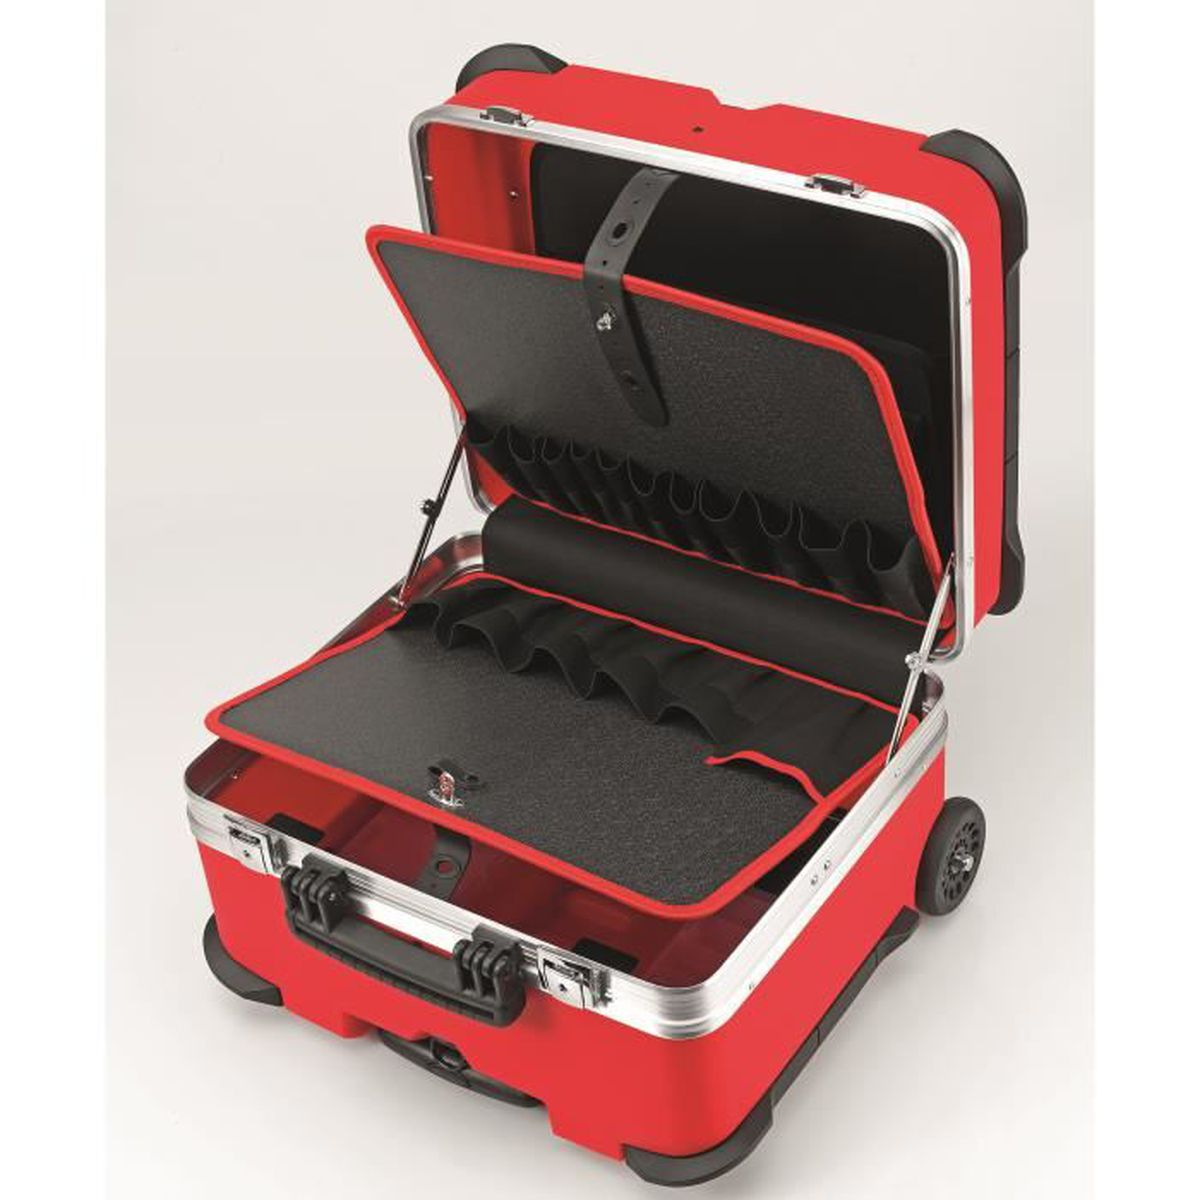 VALISE A OUTILS JUMBO ROUGE AVEC ROULETTES 42,42KG 4142X4200X42MM ... - Valise Rouge